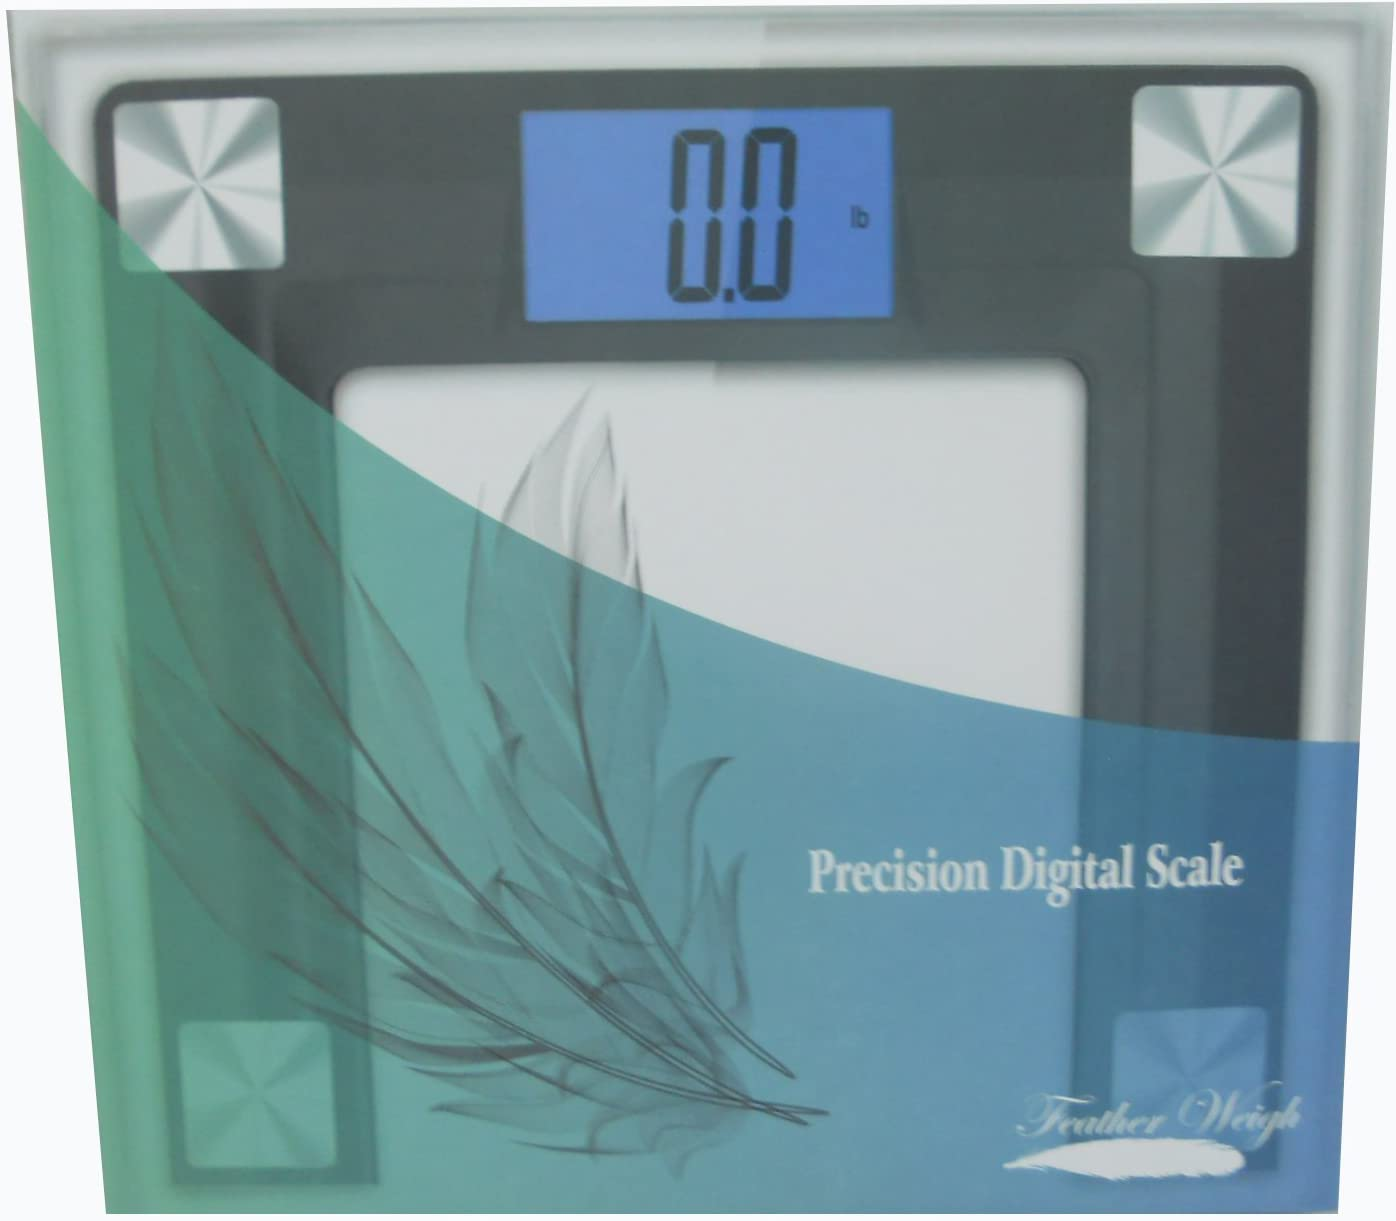 FeatherWeigh Precision Digital Bathroom Scale with Extra Large Backlight Display and Step-on Technology 400lbs Black